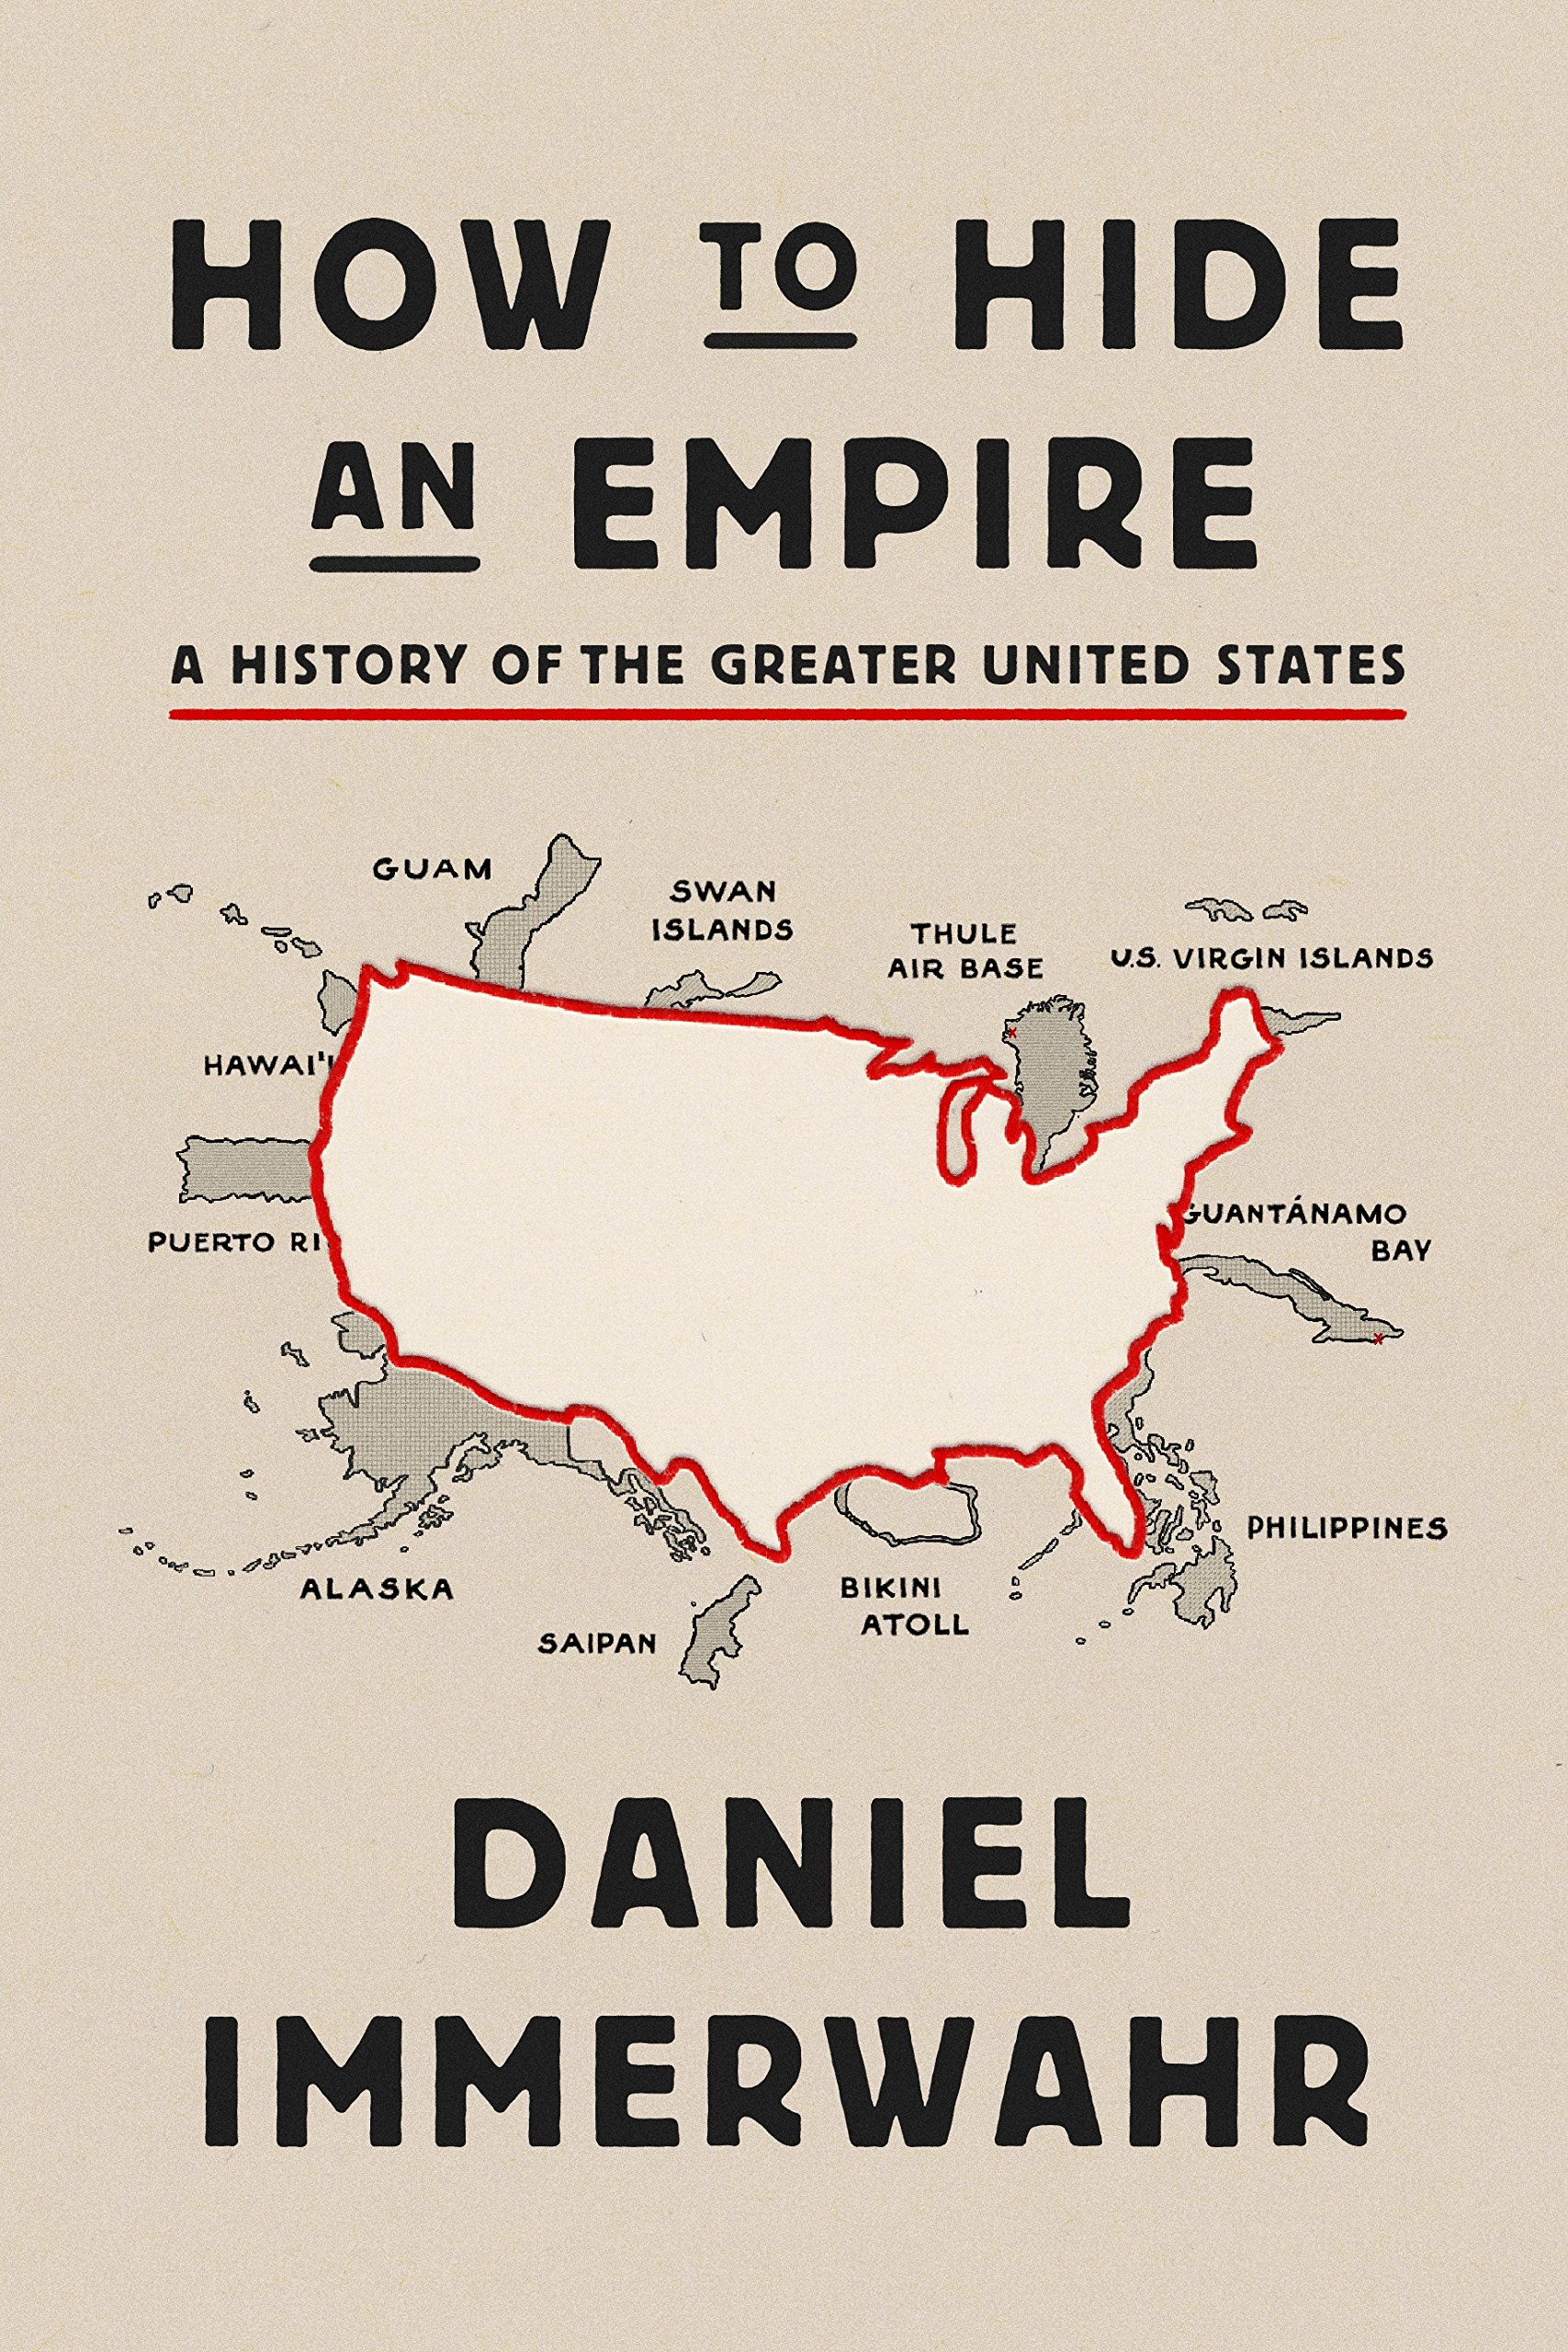 immerwahr-how-to-hide-an-empire-history-of-the-united-states